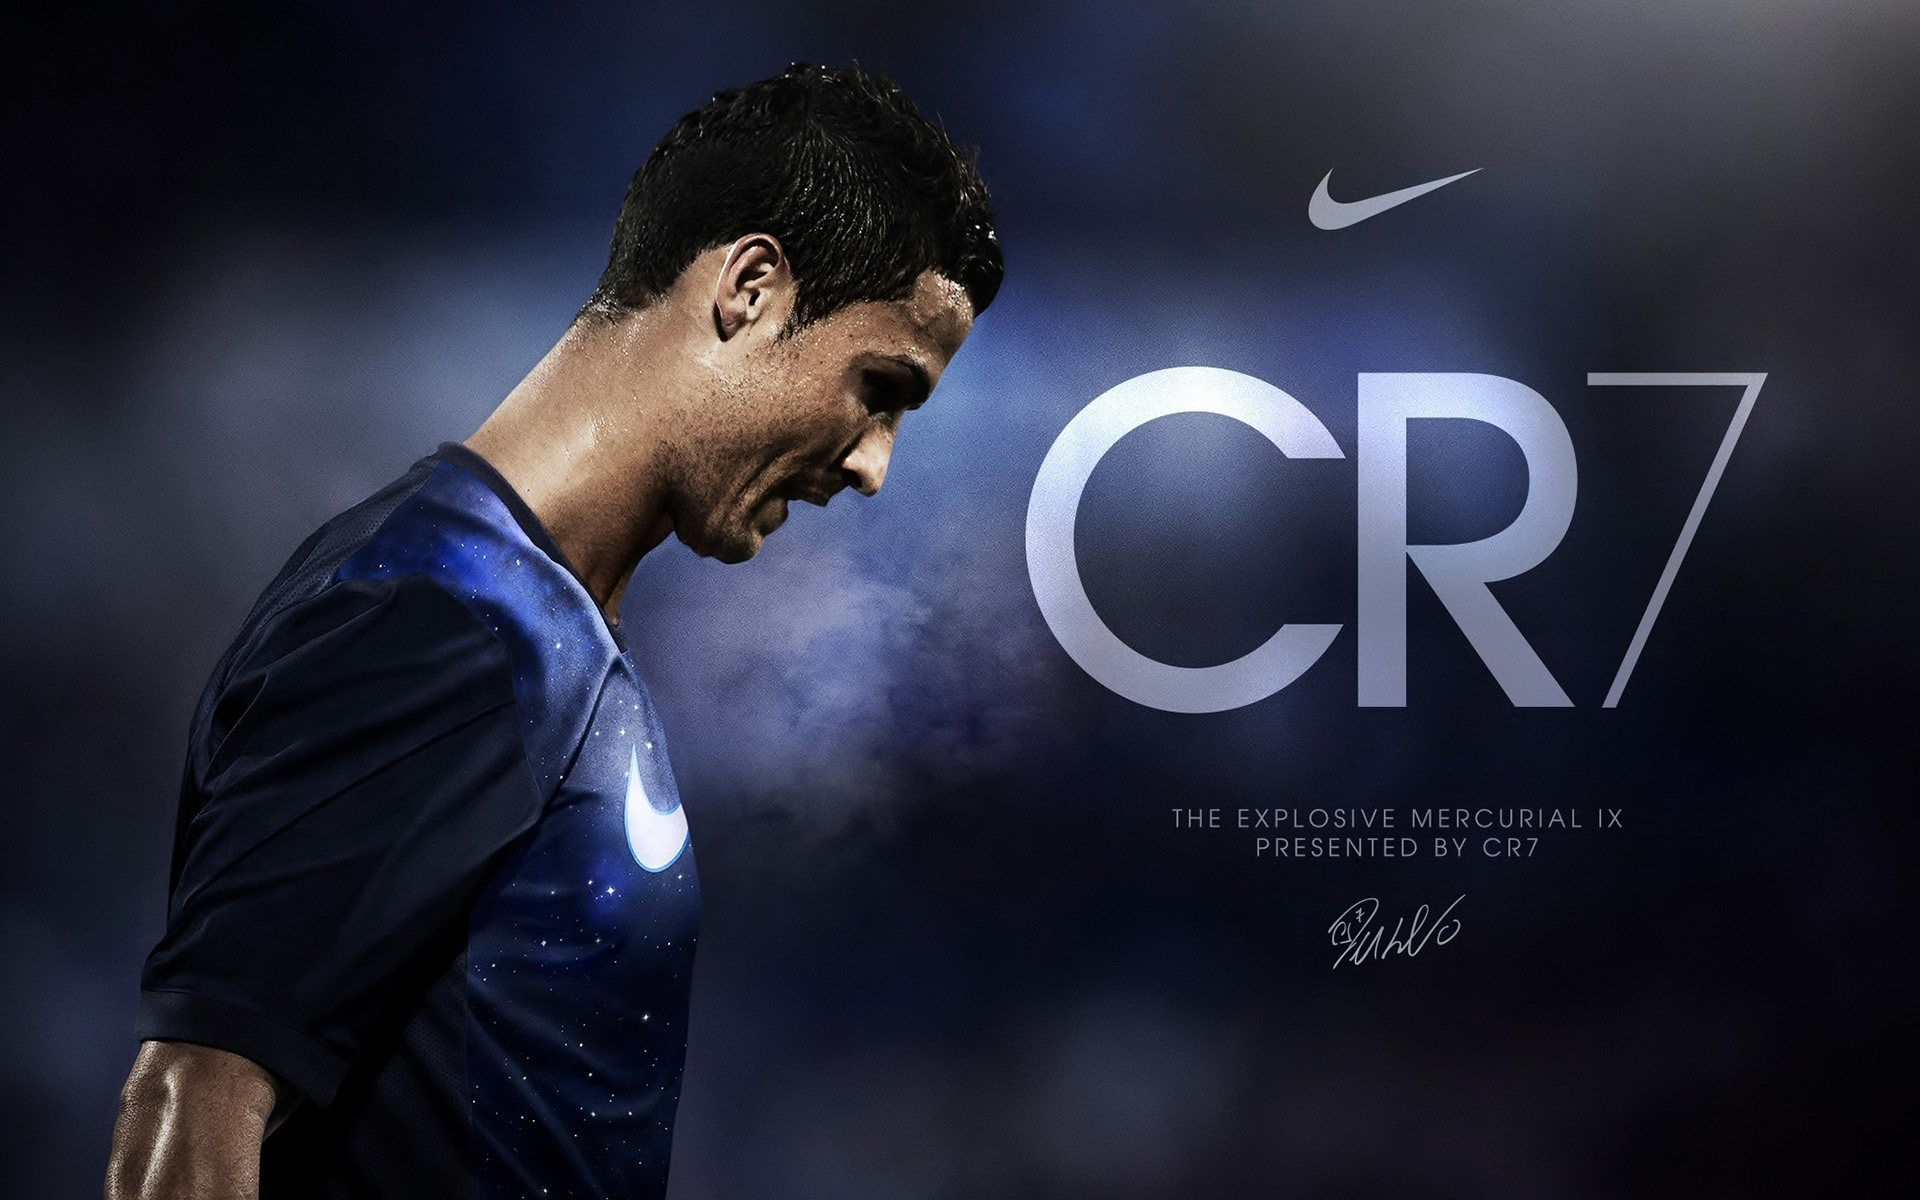 59 cristiano ronaldo hd wallpapers | background images - wallpaper abyss